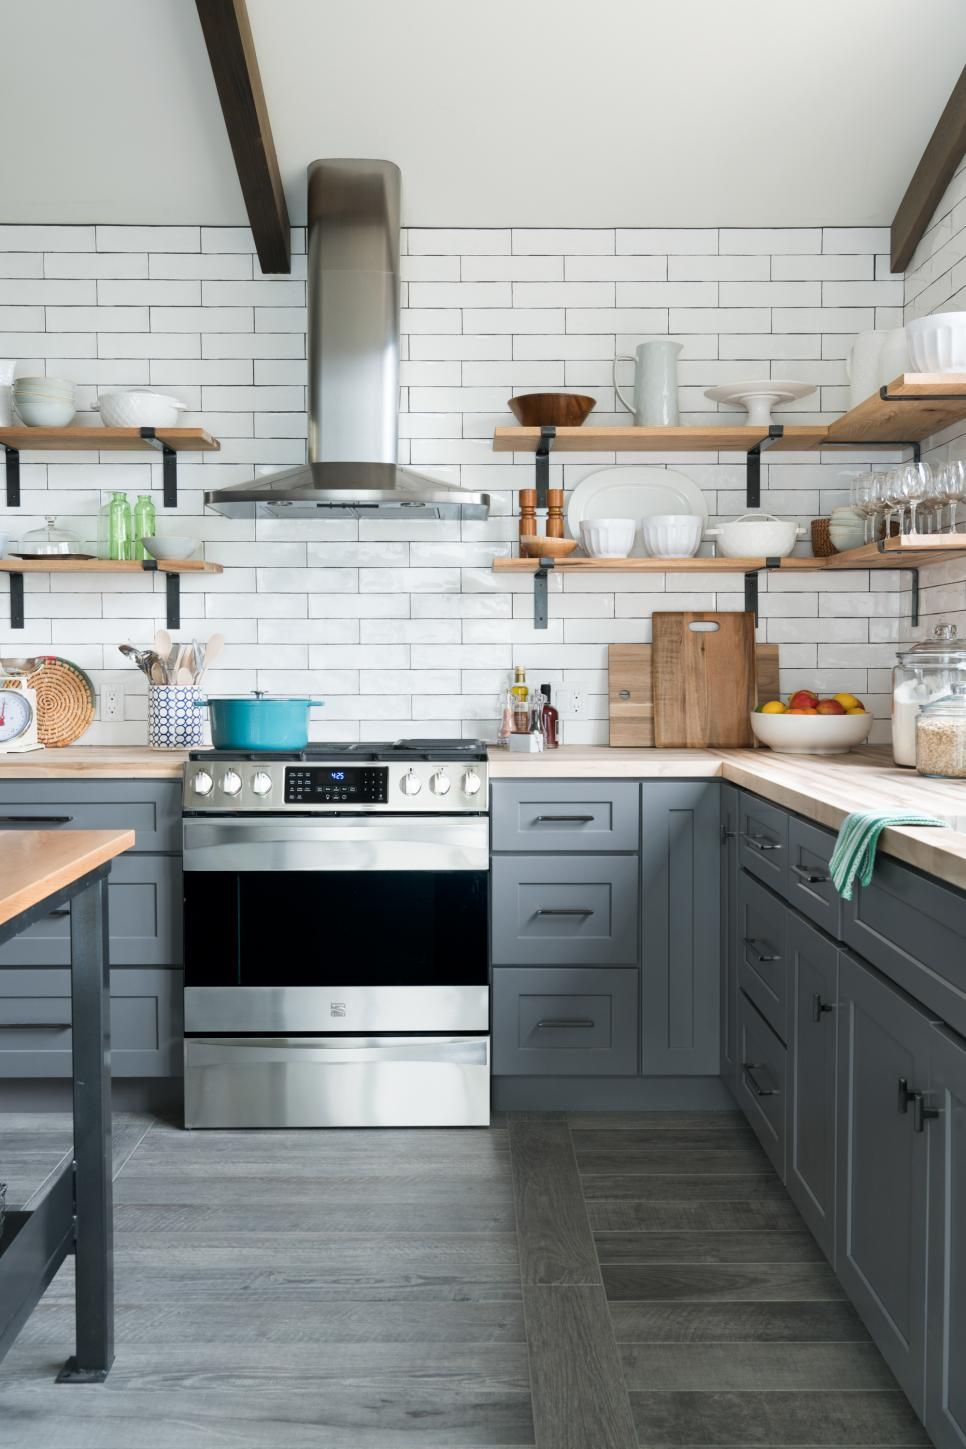 the open kitchen at diy network ultimate retreat 2017 has an industrial style that highlights